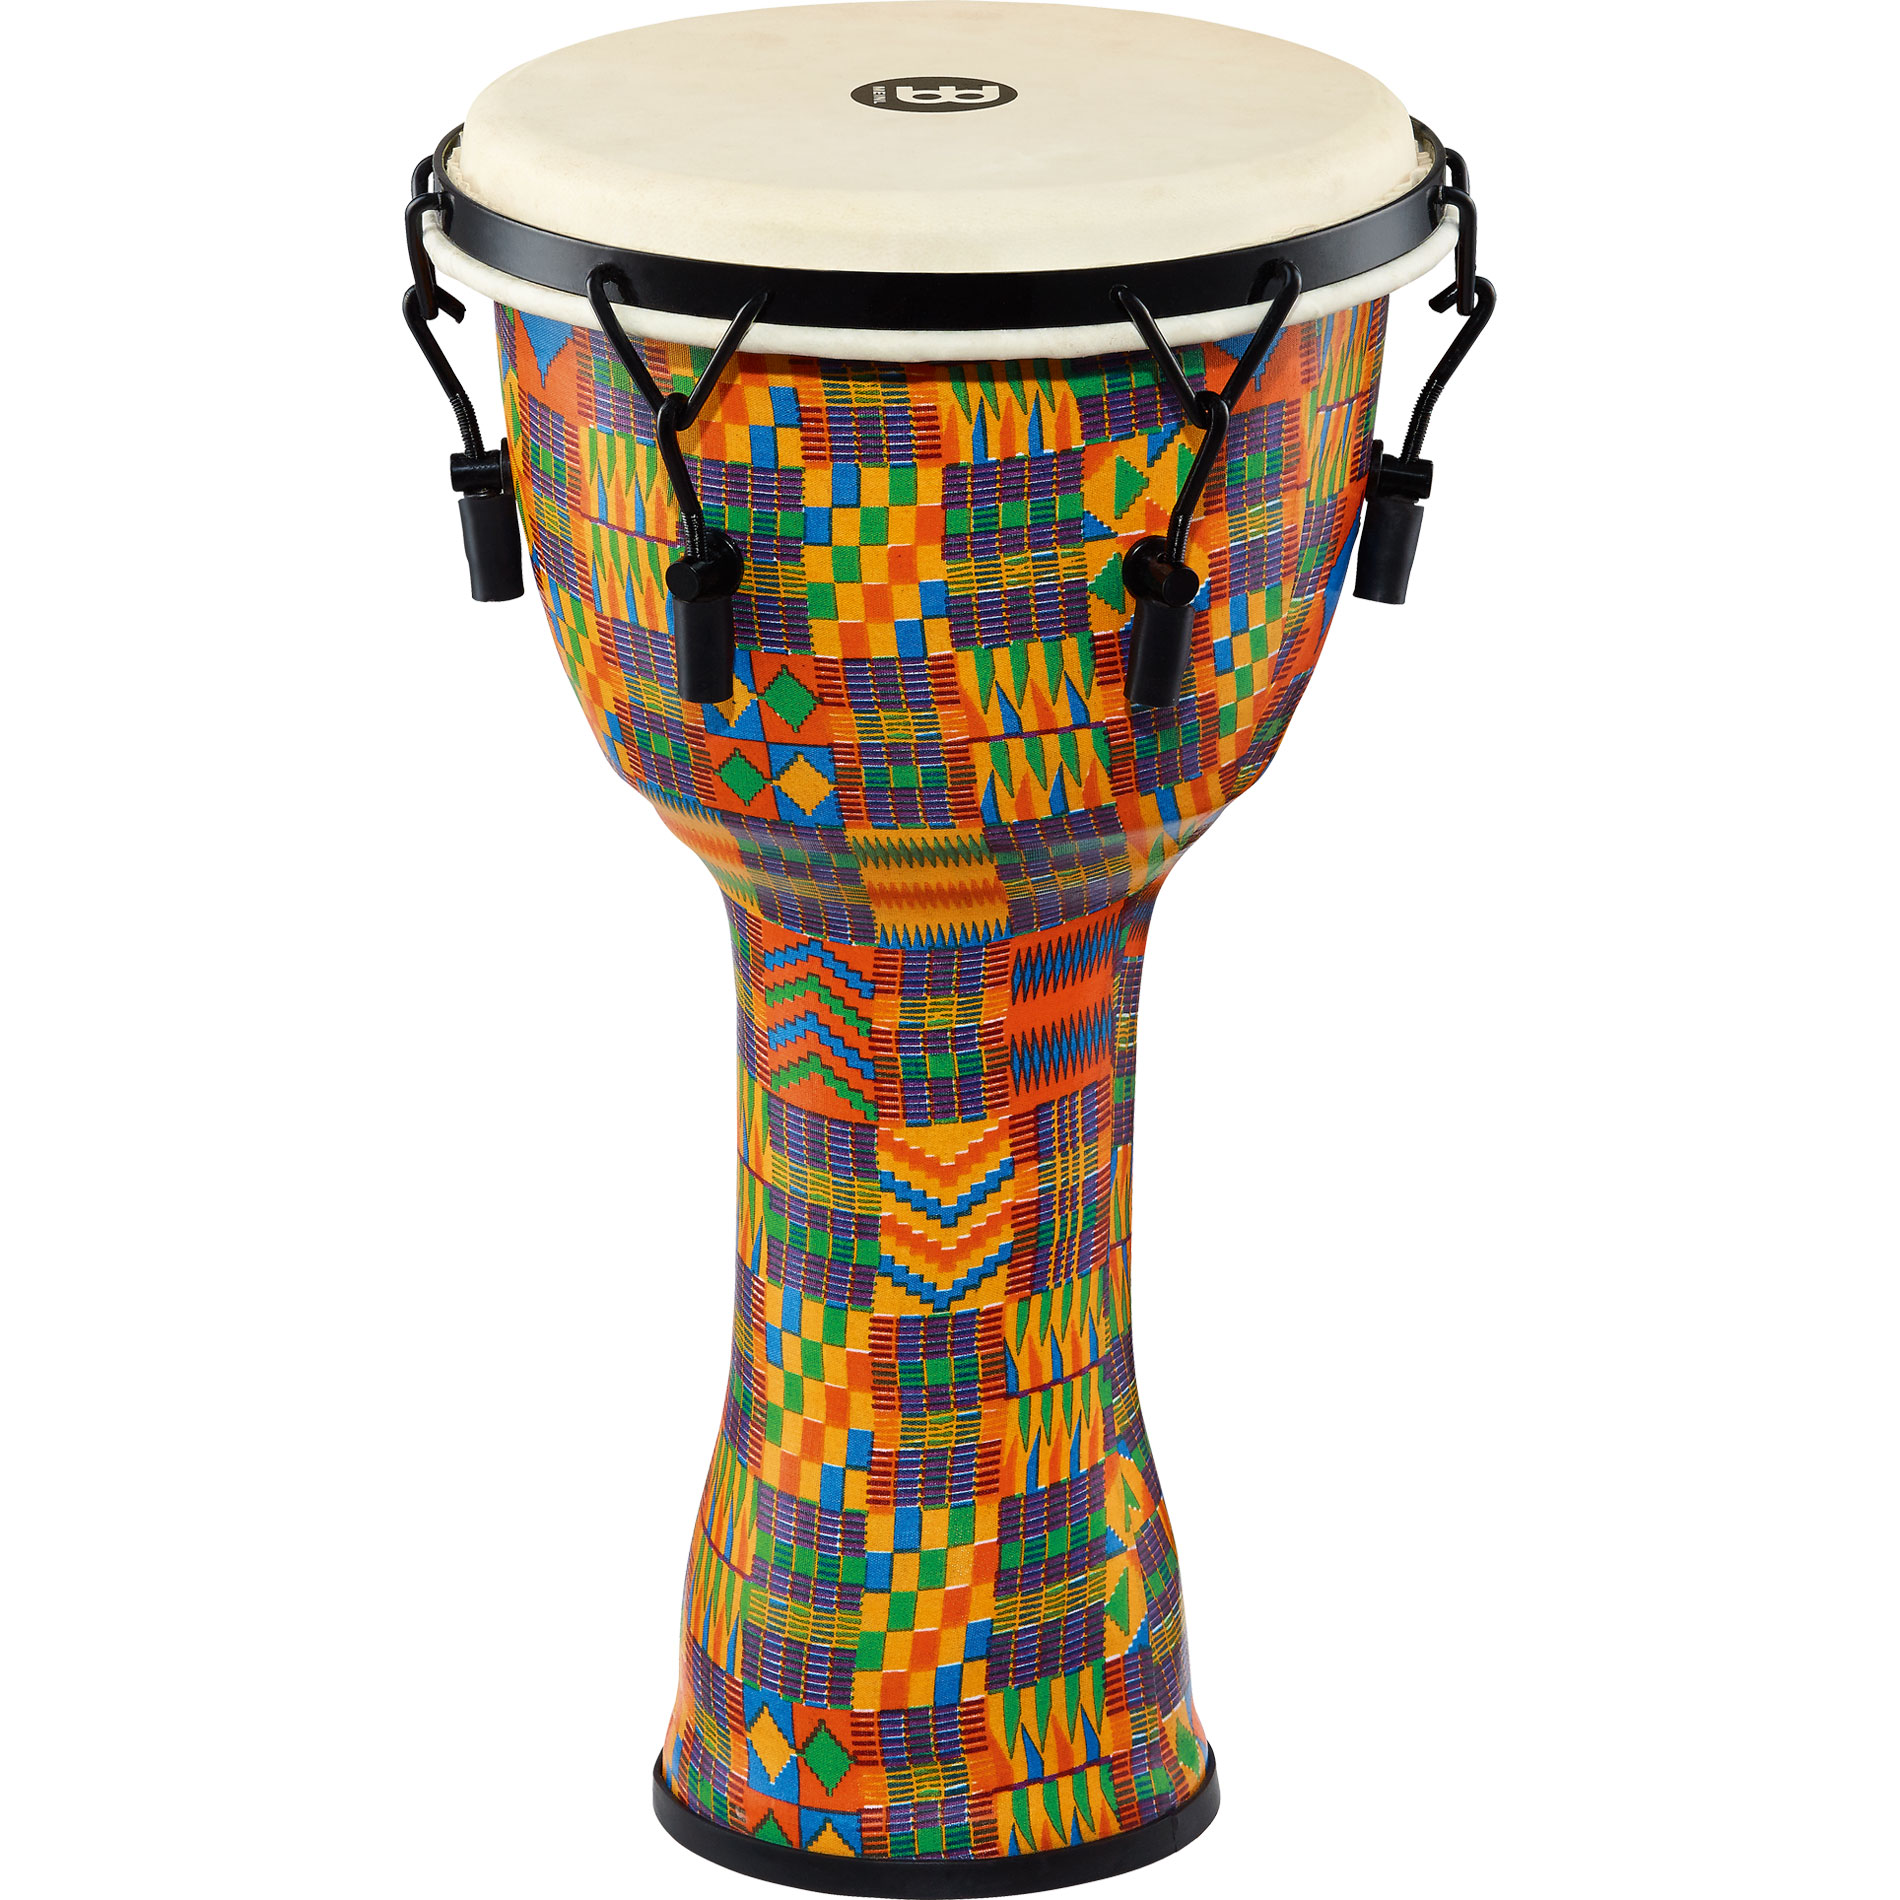 "Meinl 10"" Mechanically-Tuned Travel Djembe in Kenyan Quilt with Natural Head"